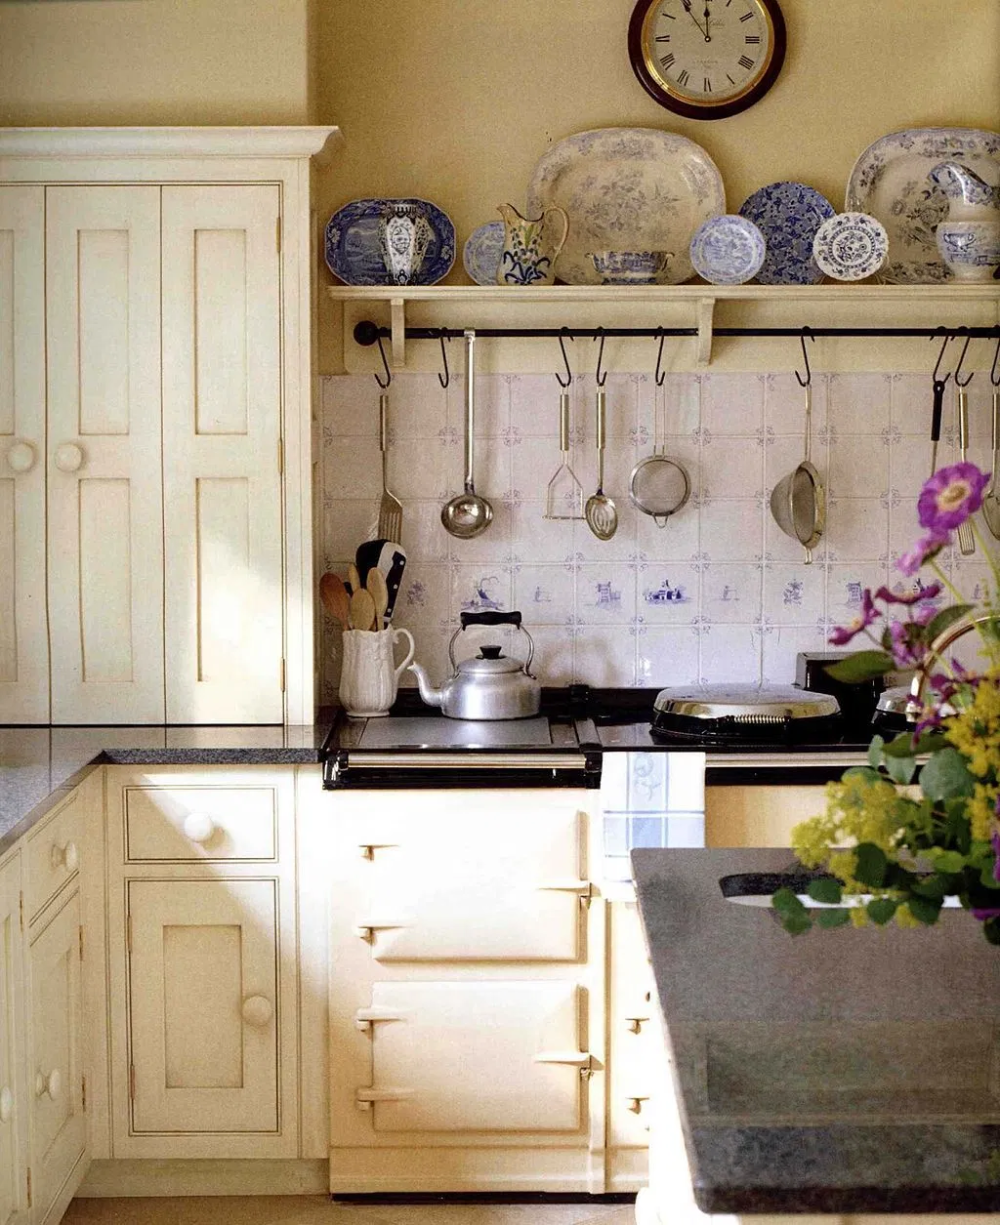 English Country Charm In 2020 English Cottage Kitchens English Country Kitchens Country Kitchen Decor